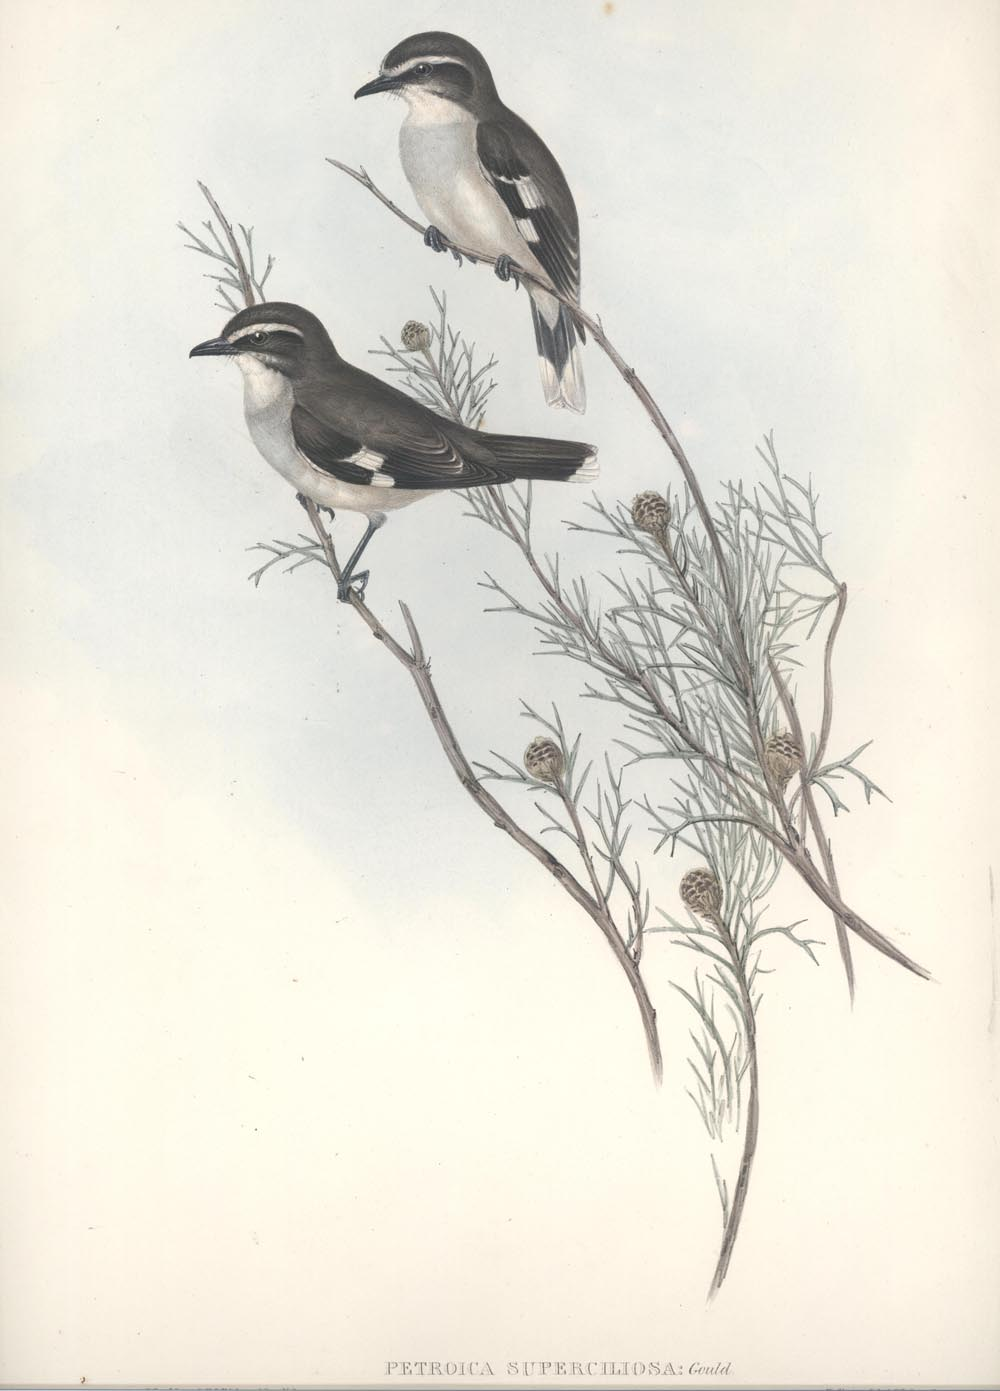 John Gould Petroica superciliosa, Australian White-eyebrowed Robin lithograph c1848